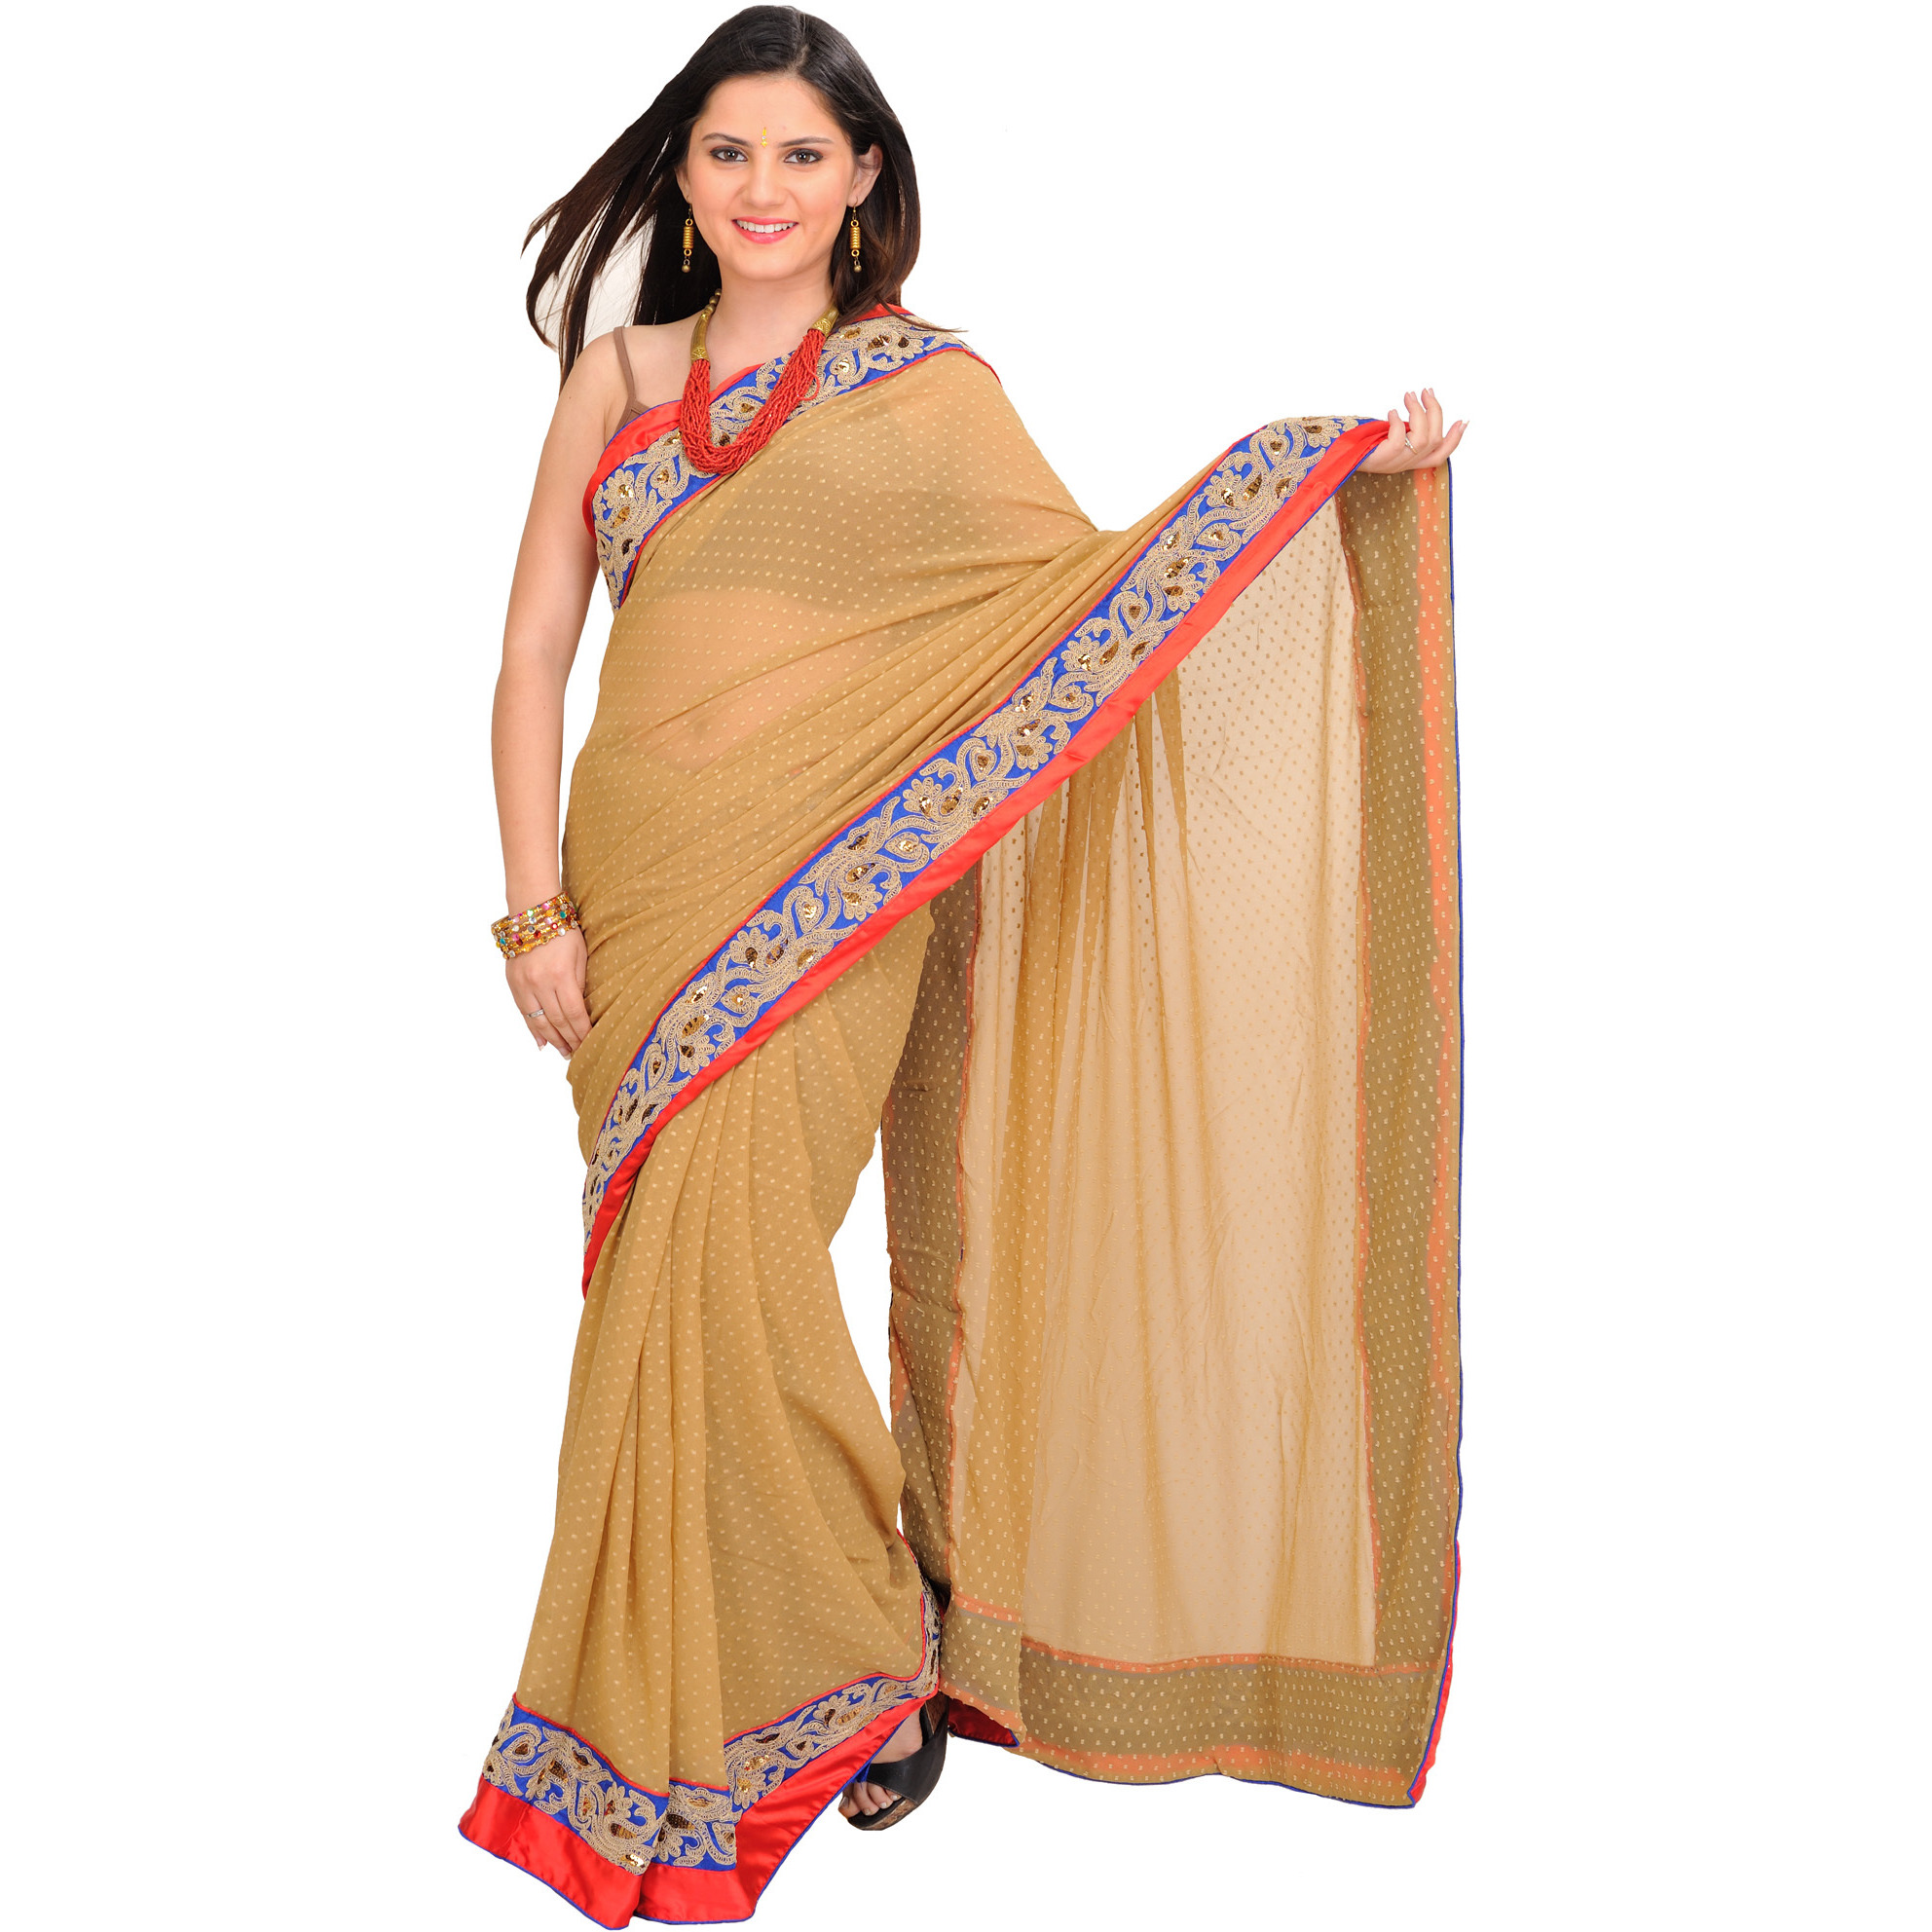 Warm-Sand Wedding Shimmer Sari with Woven Bootis and Embroidered Patch Border